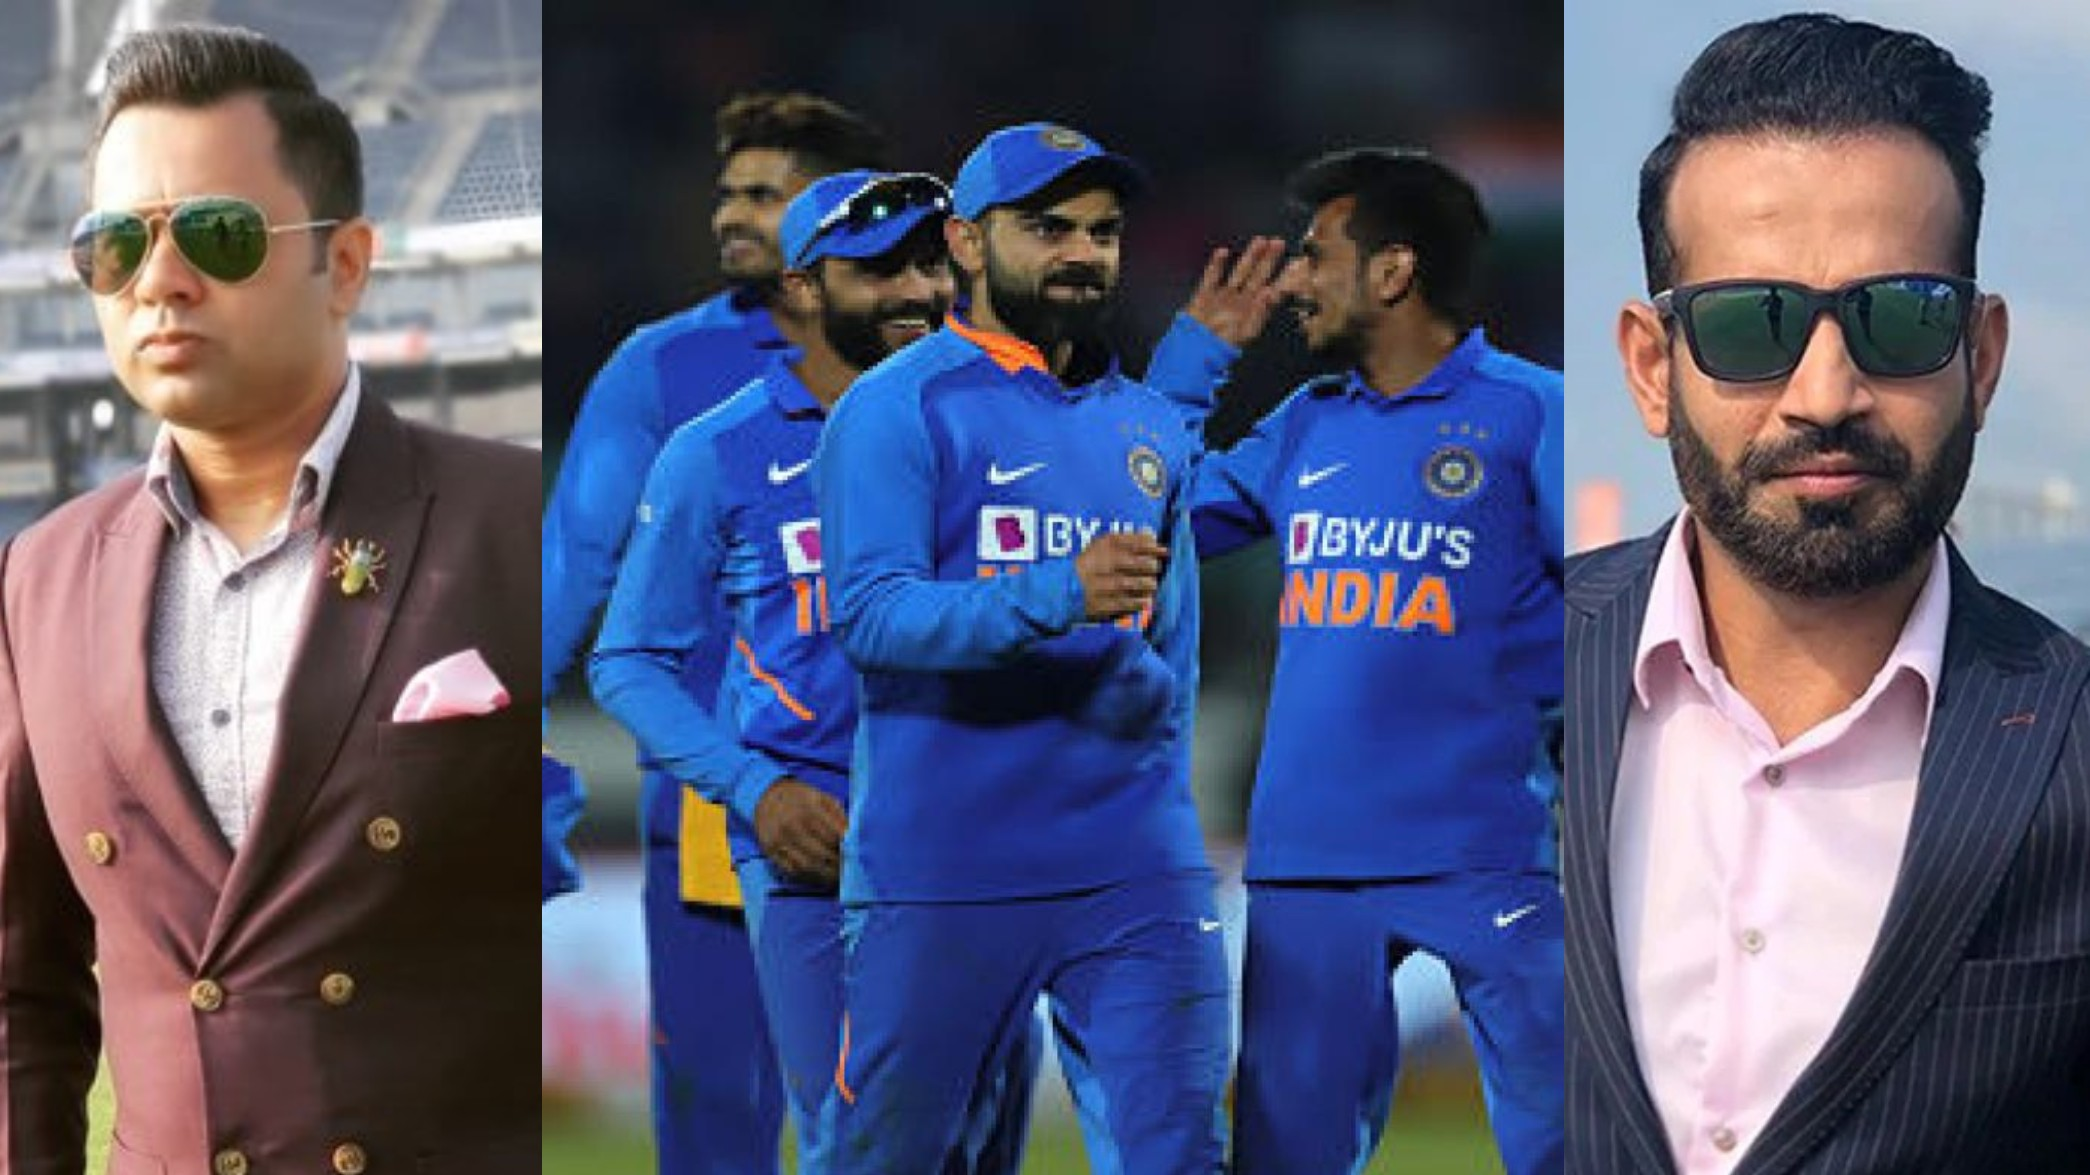 IND v AUS 2020: Cricket fraternity reacts as Rohit's 119 and Kohli's 89 takes India to 2-1 series victory